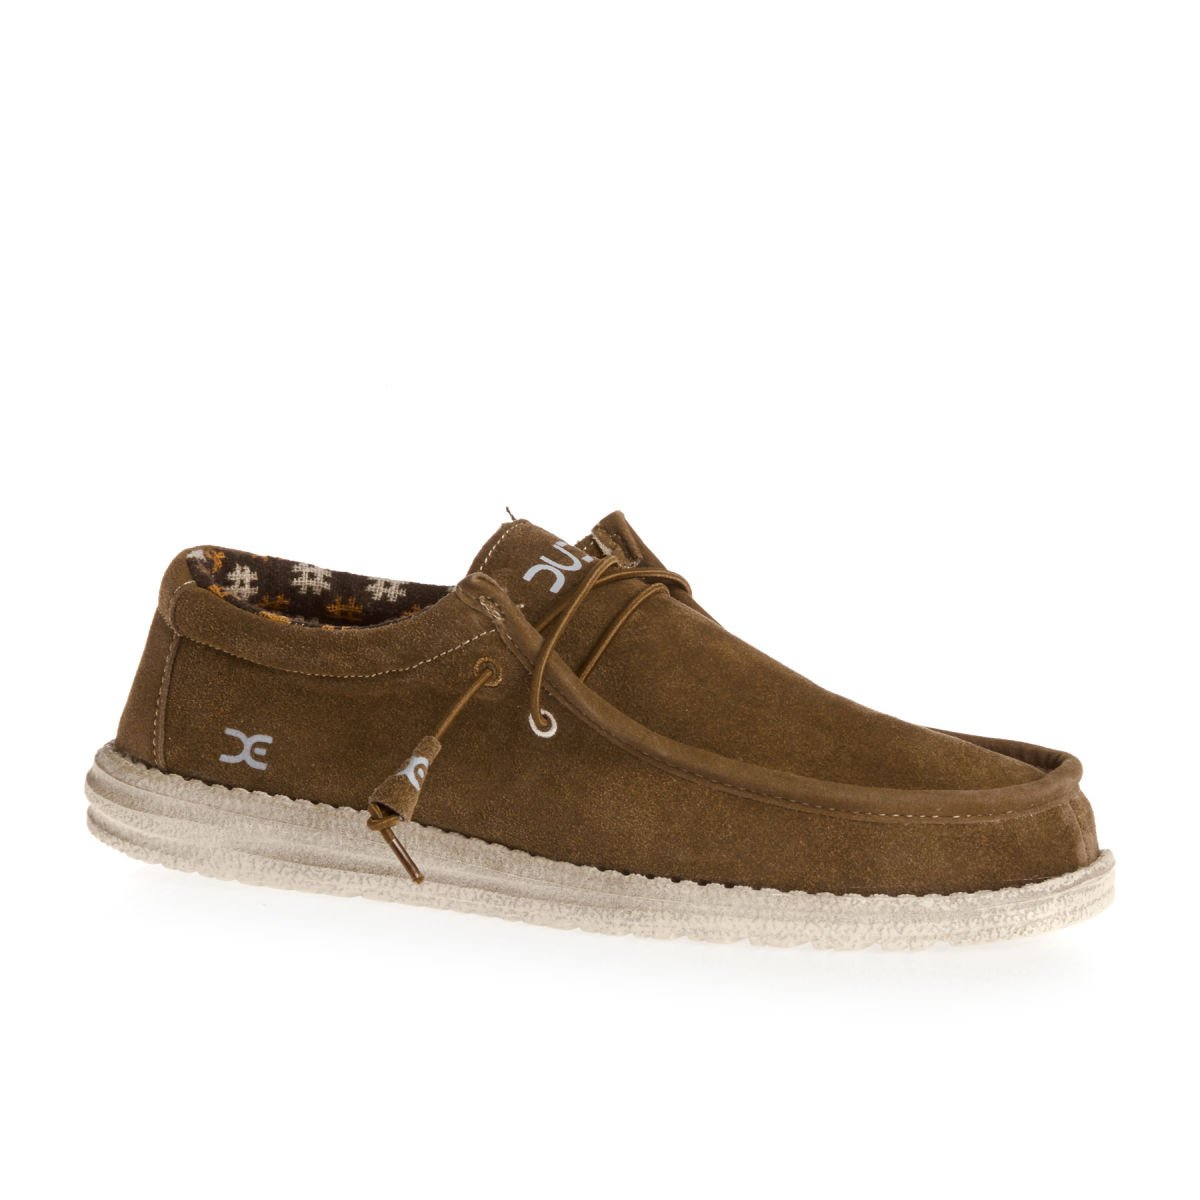 TALLA 41 EU. Dude Shoes Men's Wally Winter Suede Nut